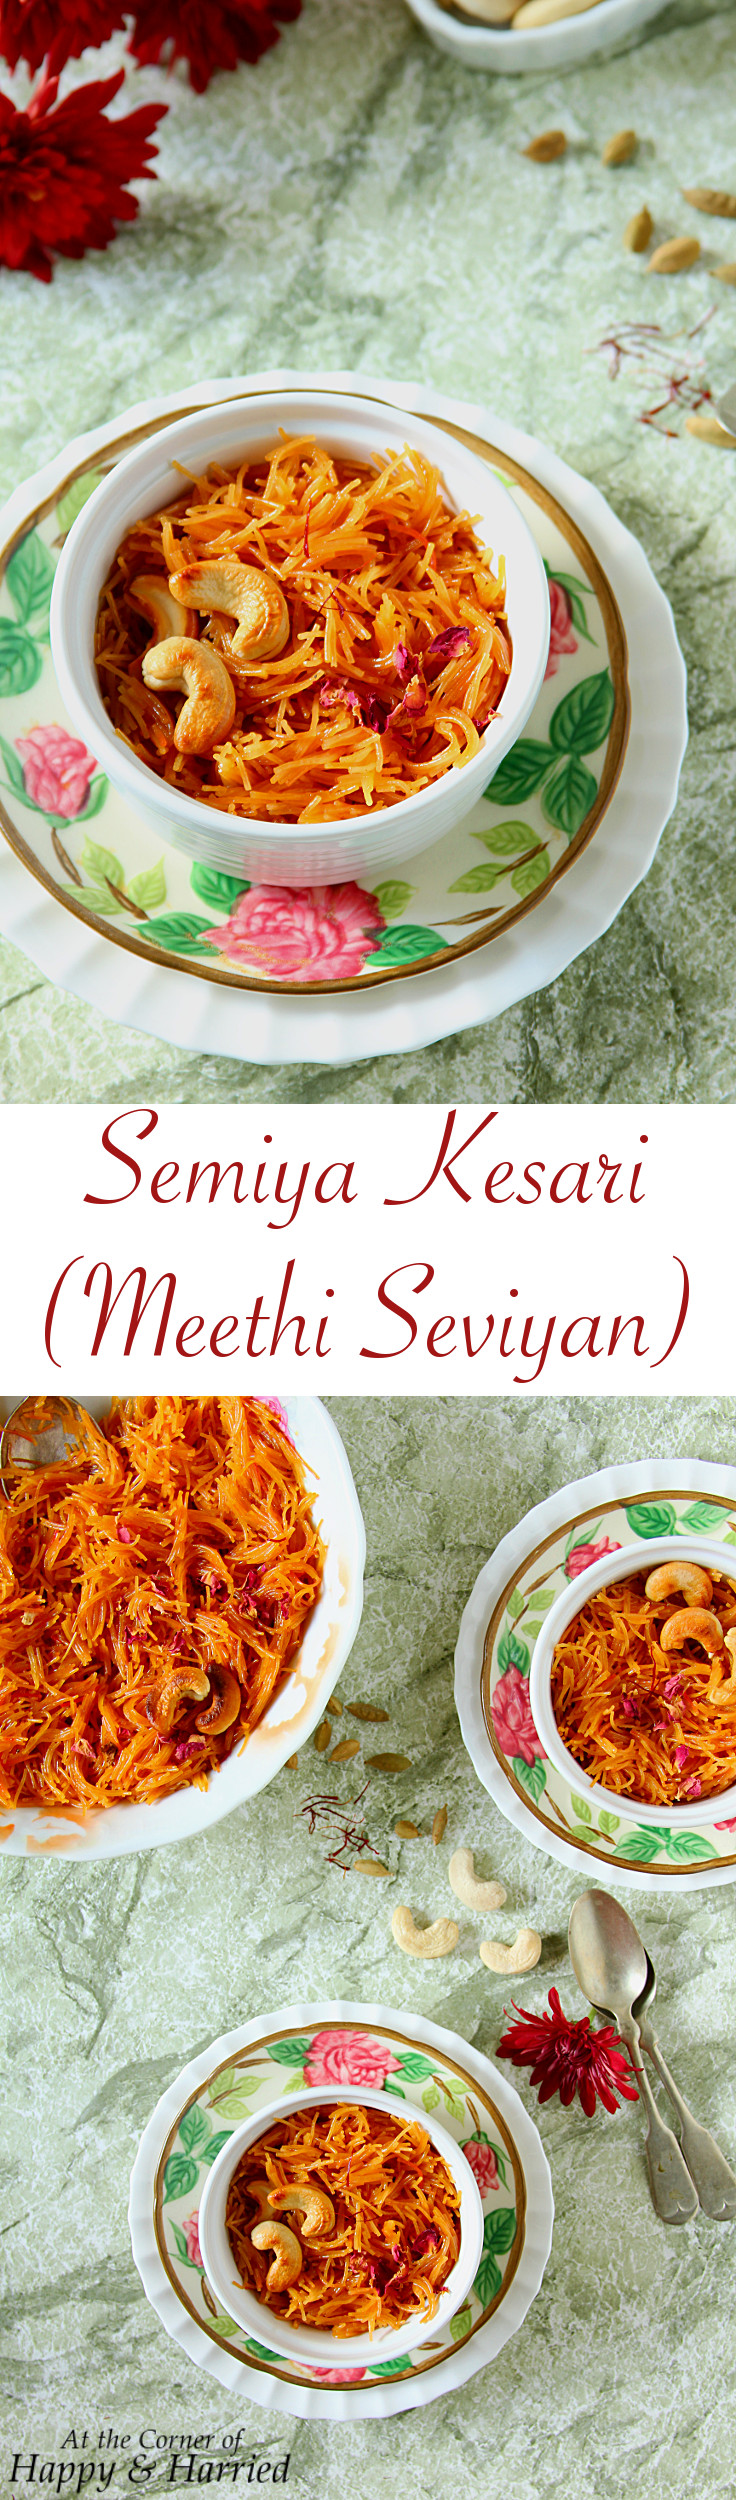 Semiya Kesari {Meethi Seviyan} - HappyAndHarried